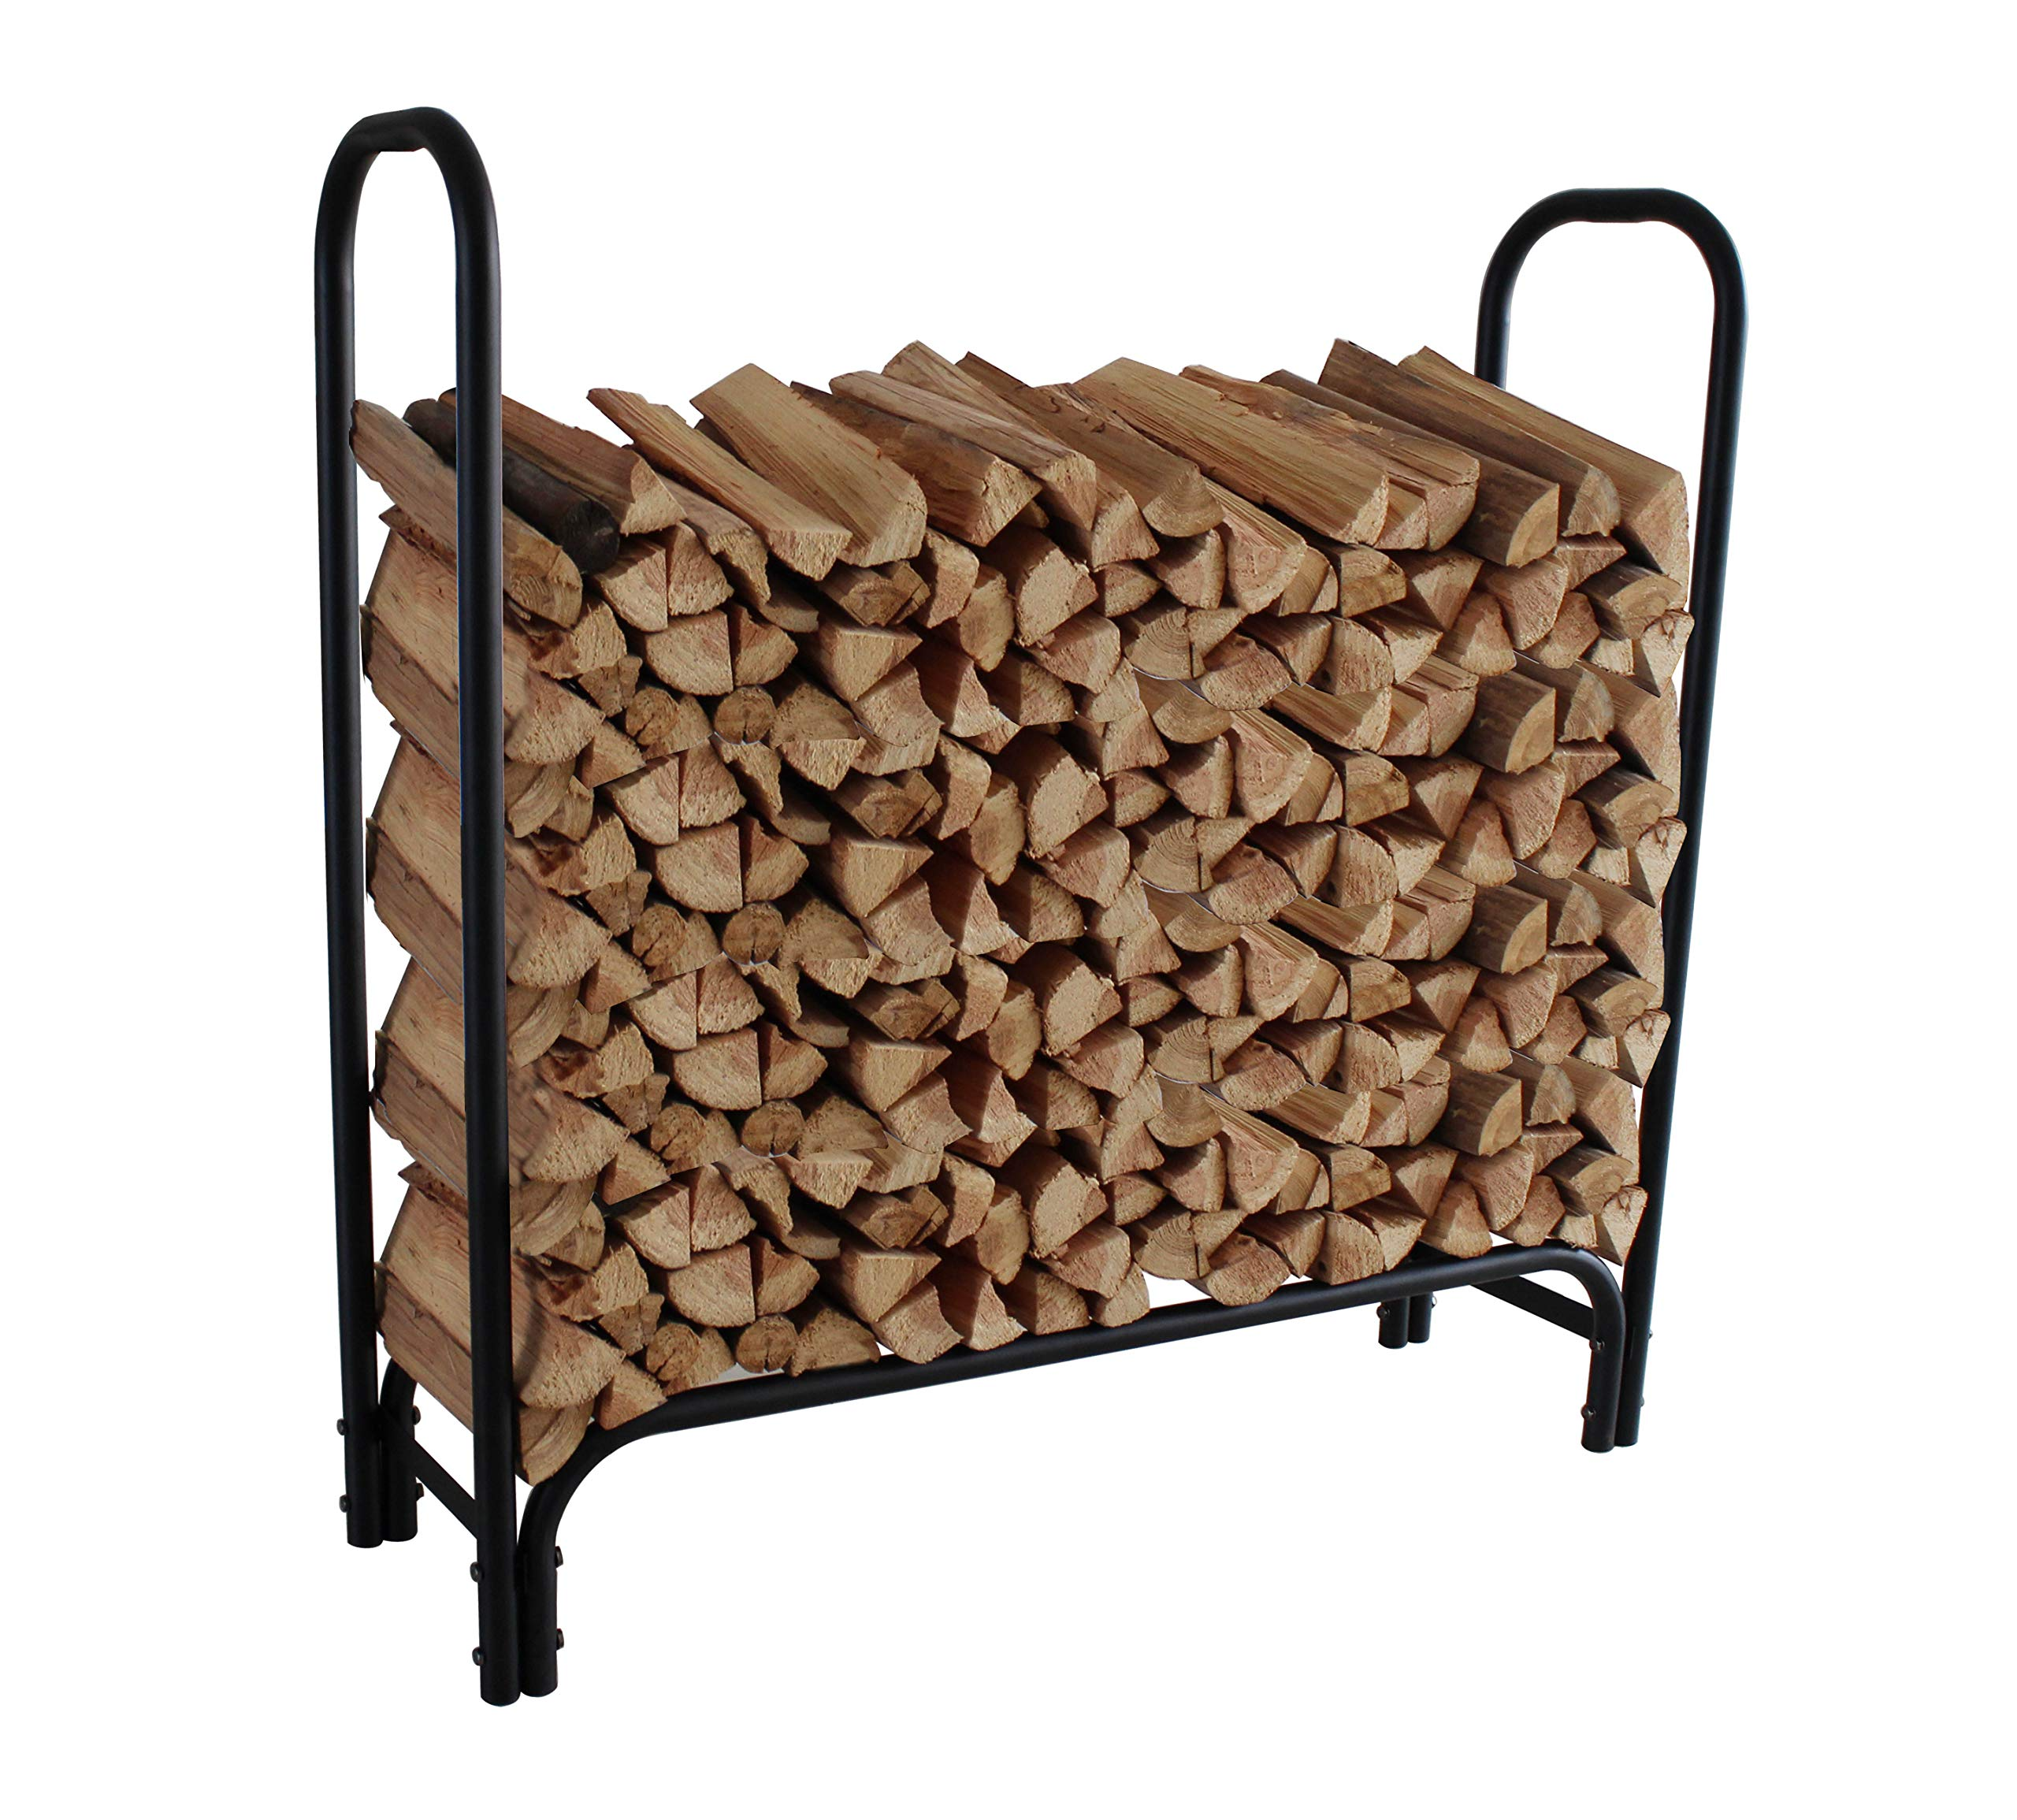 4ft Firewood Rack Outdoor Log Holder for Fireplace Heavy Duty Wood Stacker for Patio Deck Metal Kindling Logs Storage Stand Steel Tubular Wood Pile Racks Outside Fire place Tools Accessories Black by Everflying